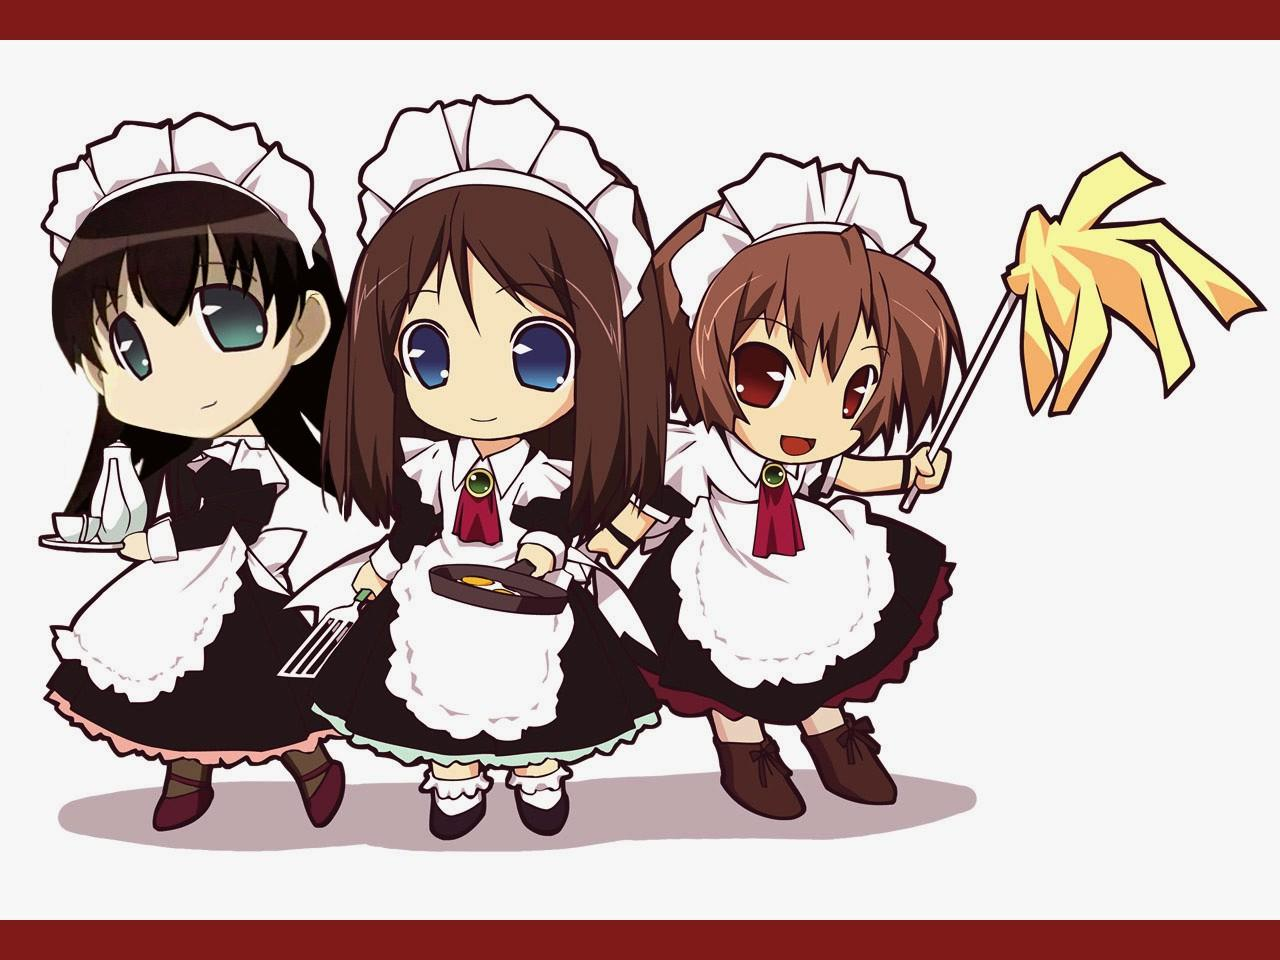 Anime Characters Chibi : Give me kawaii chibi anime characters pictures requested